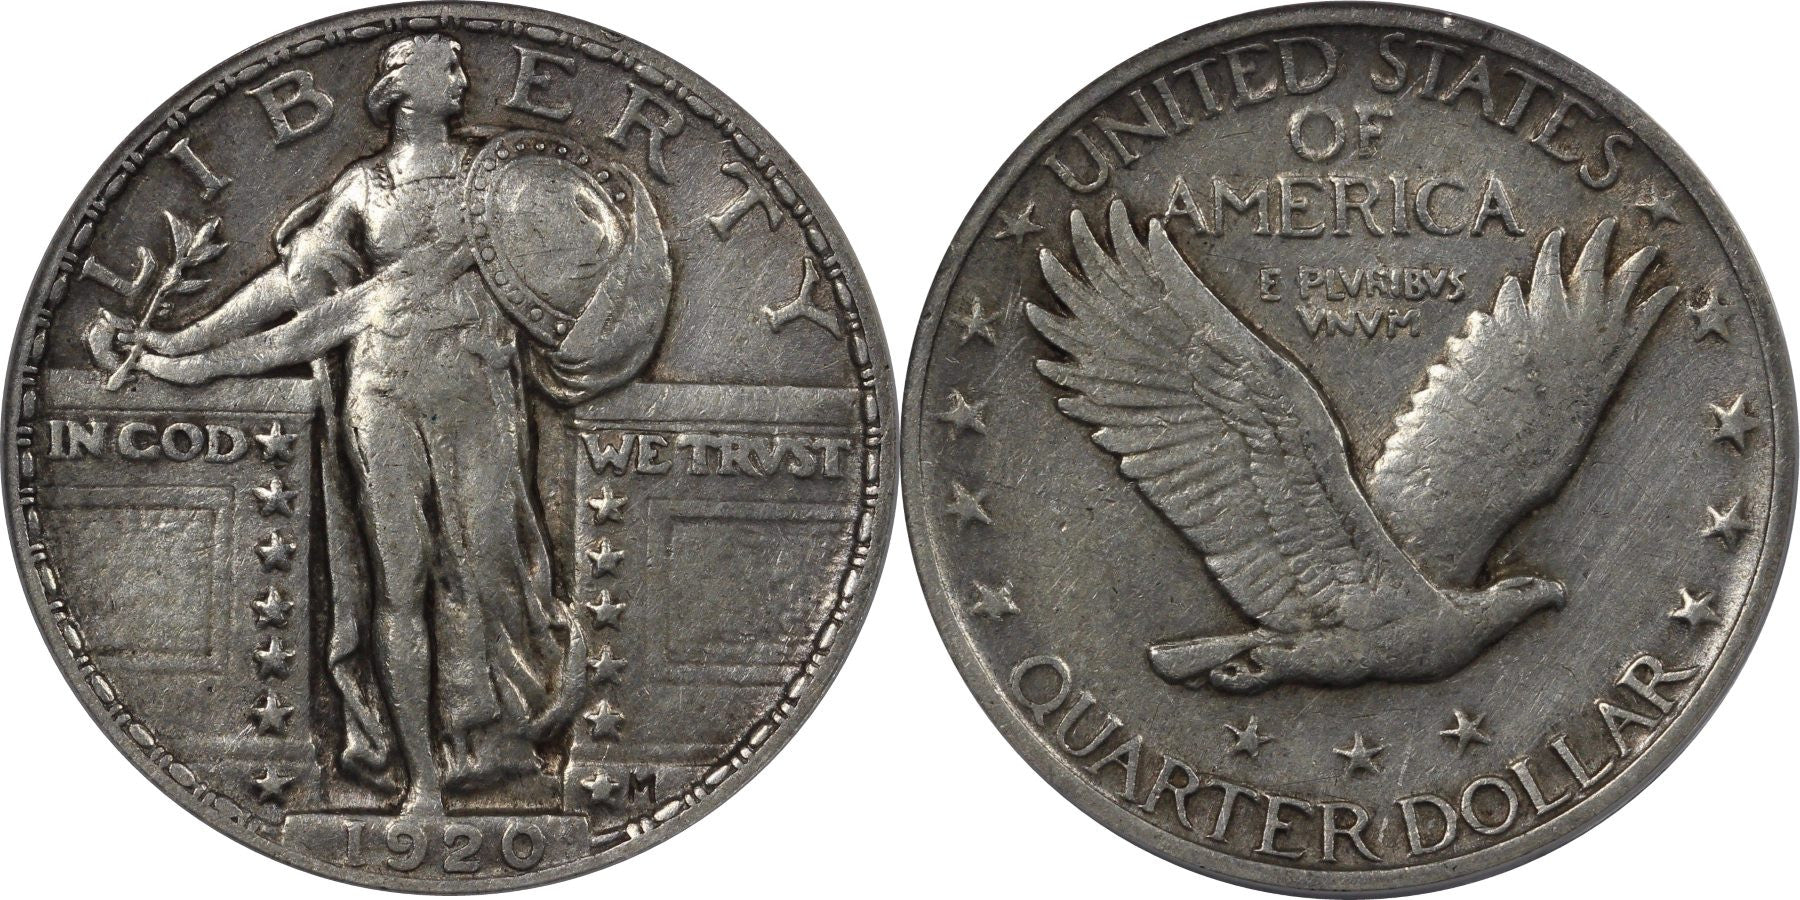 Standing Liberty Quarter Extremely Fine Condition